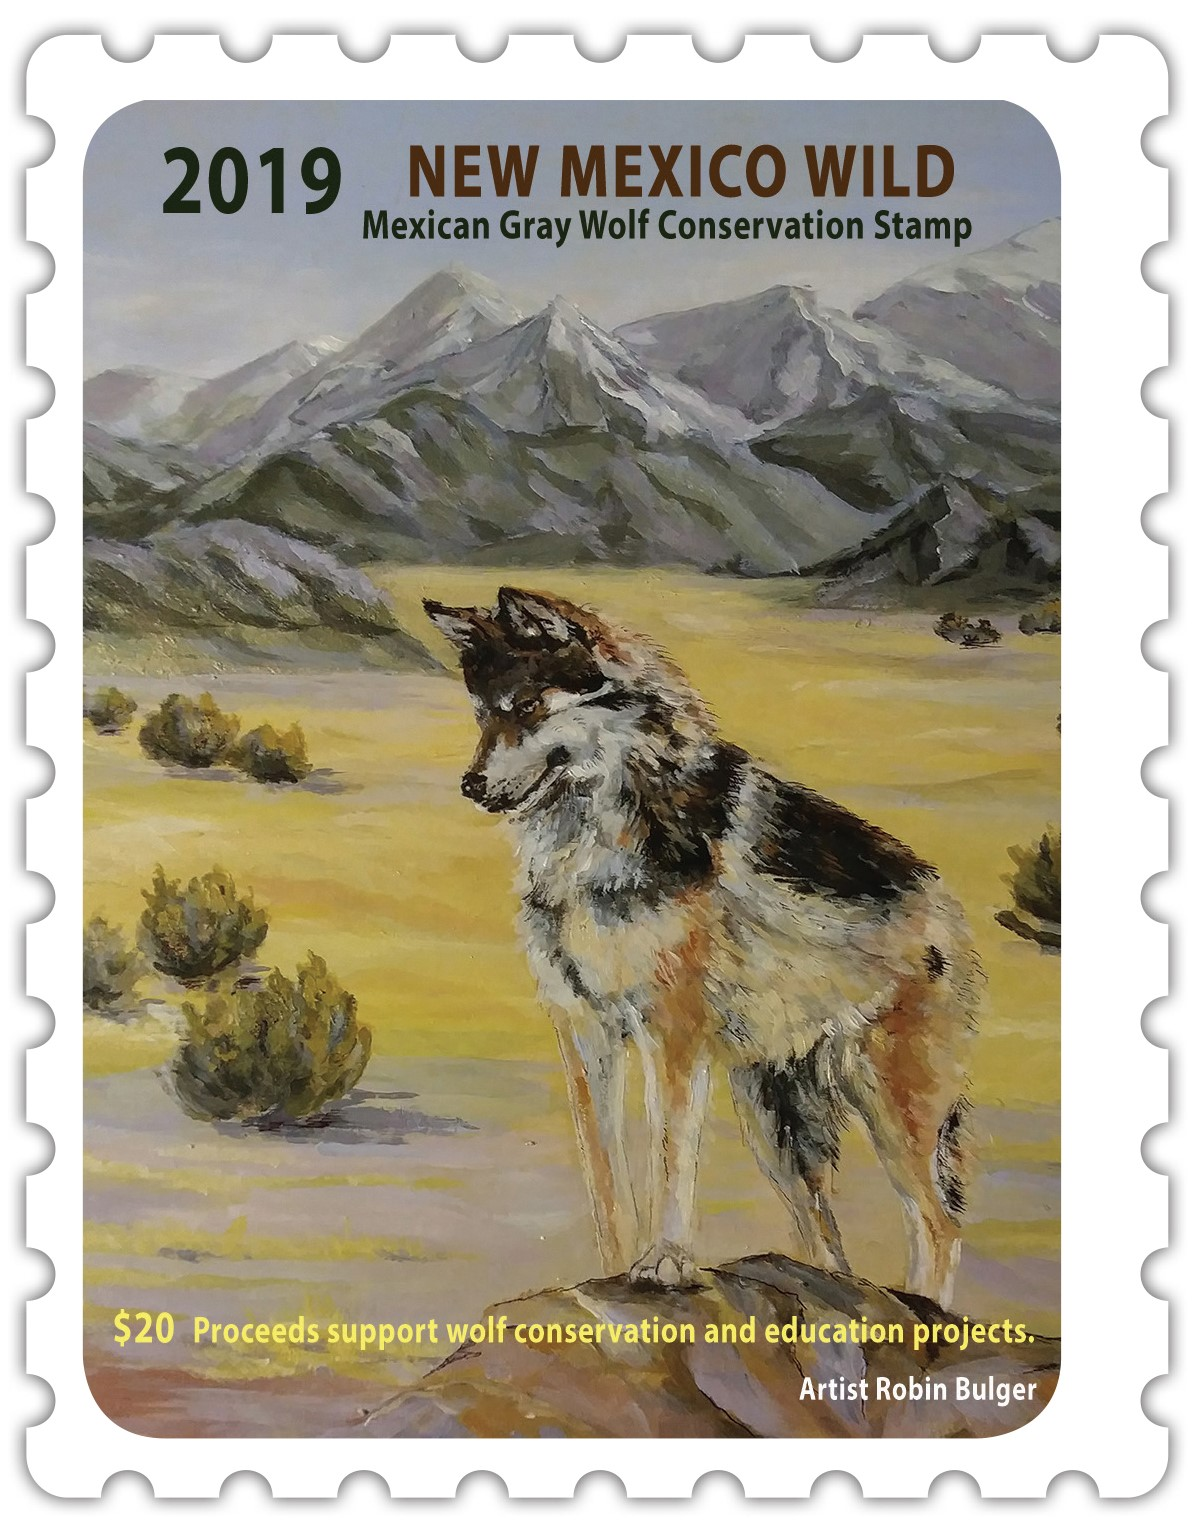 Wolf Stamp 2019 image Resized